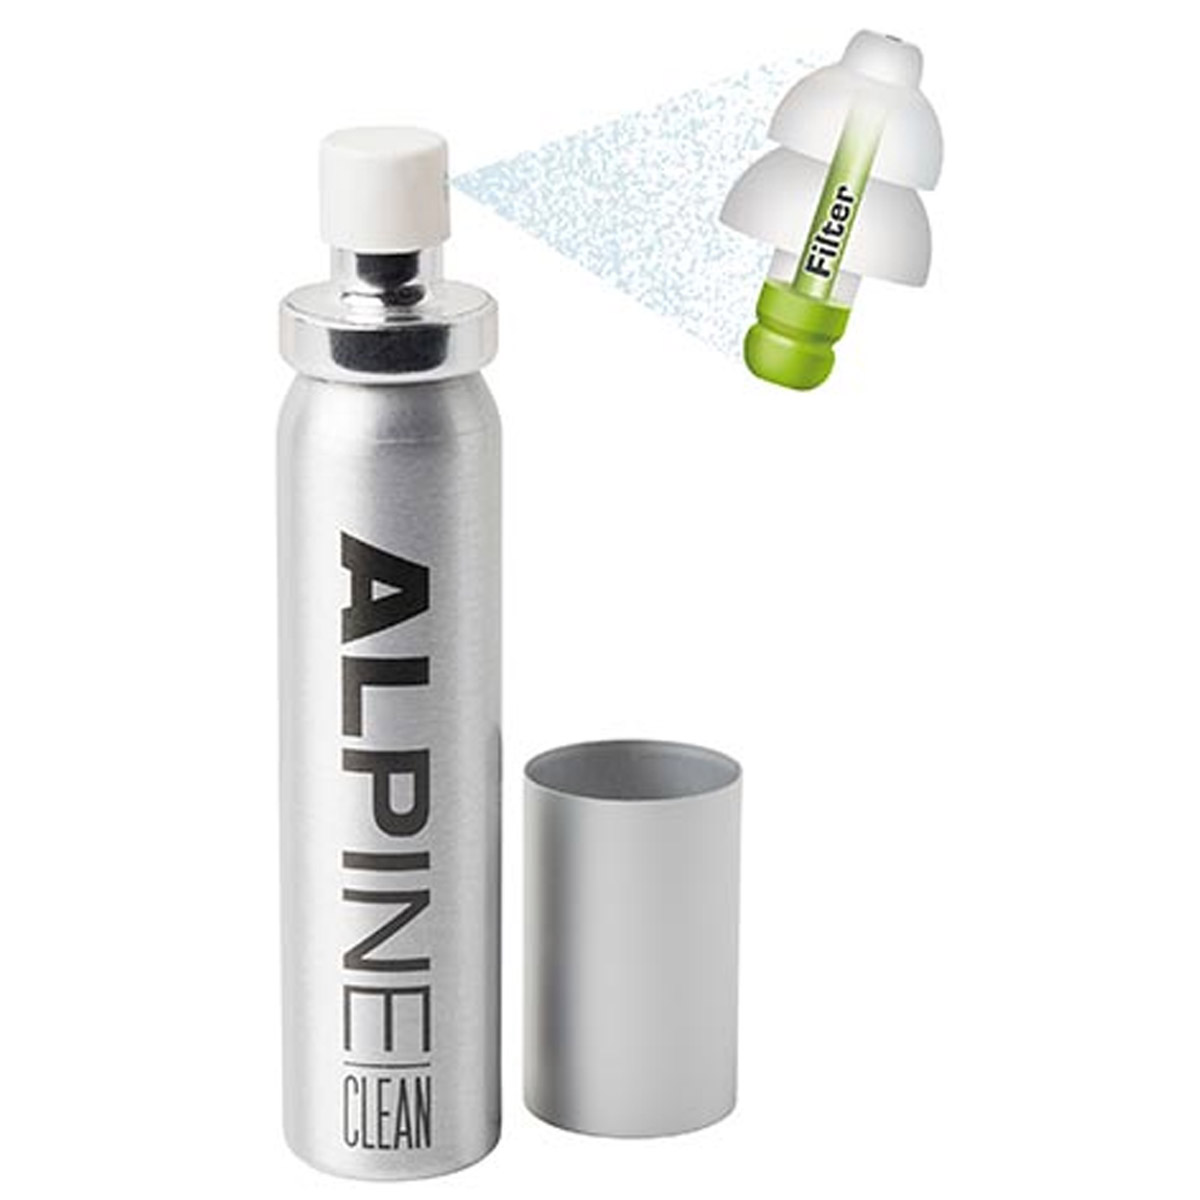 Alpine Clean Reusable Ear Plug Cleaning Spray